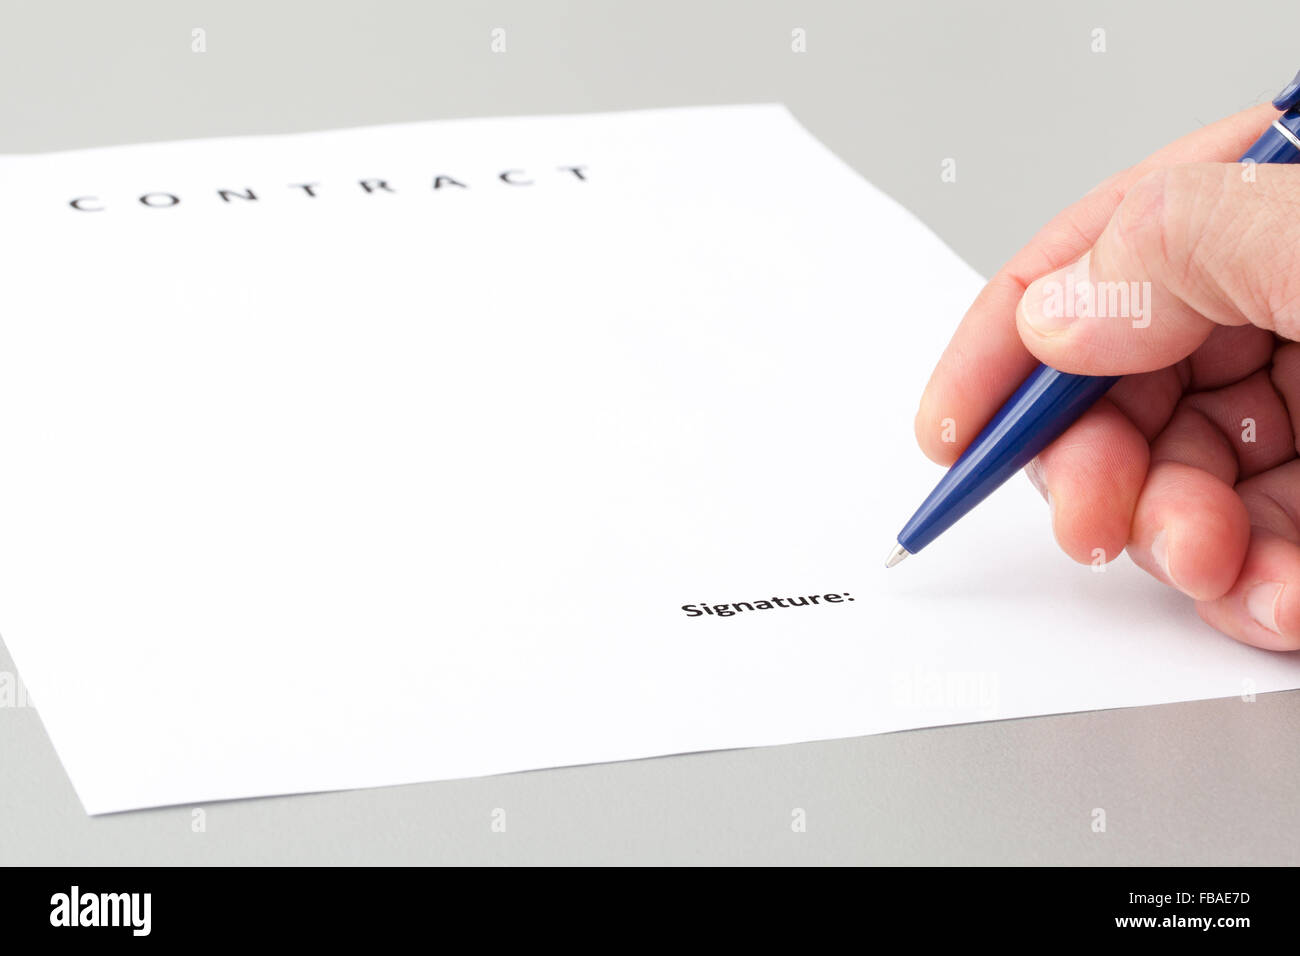 Man with a pen, signing a contract on a grey table in the office. - Stock Image